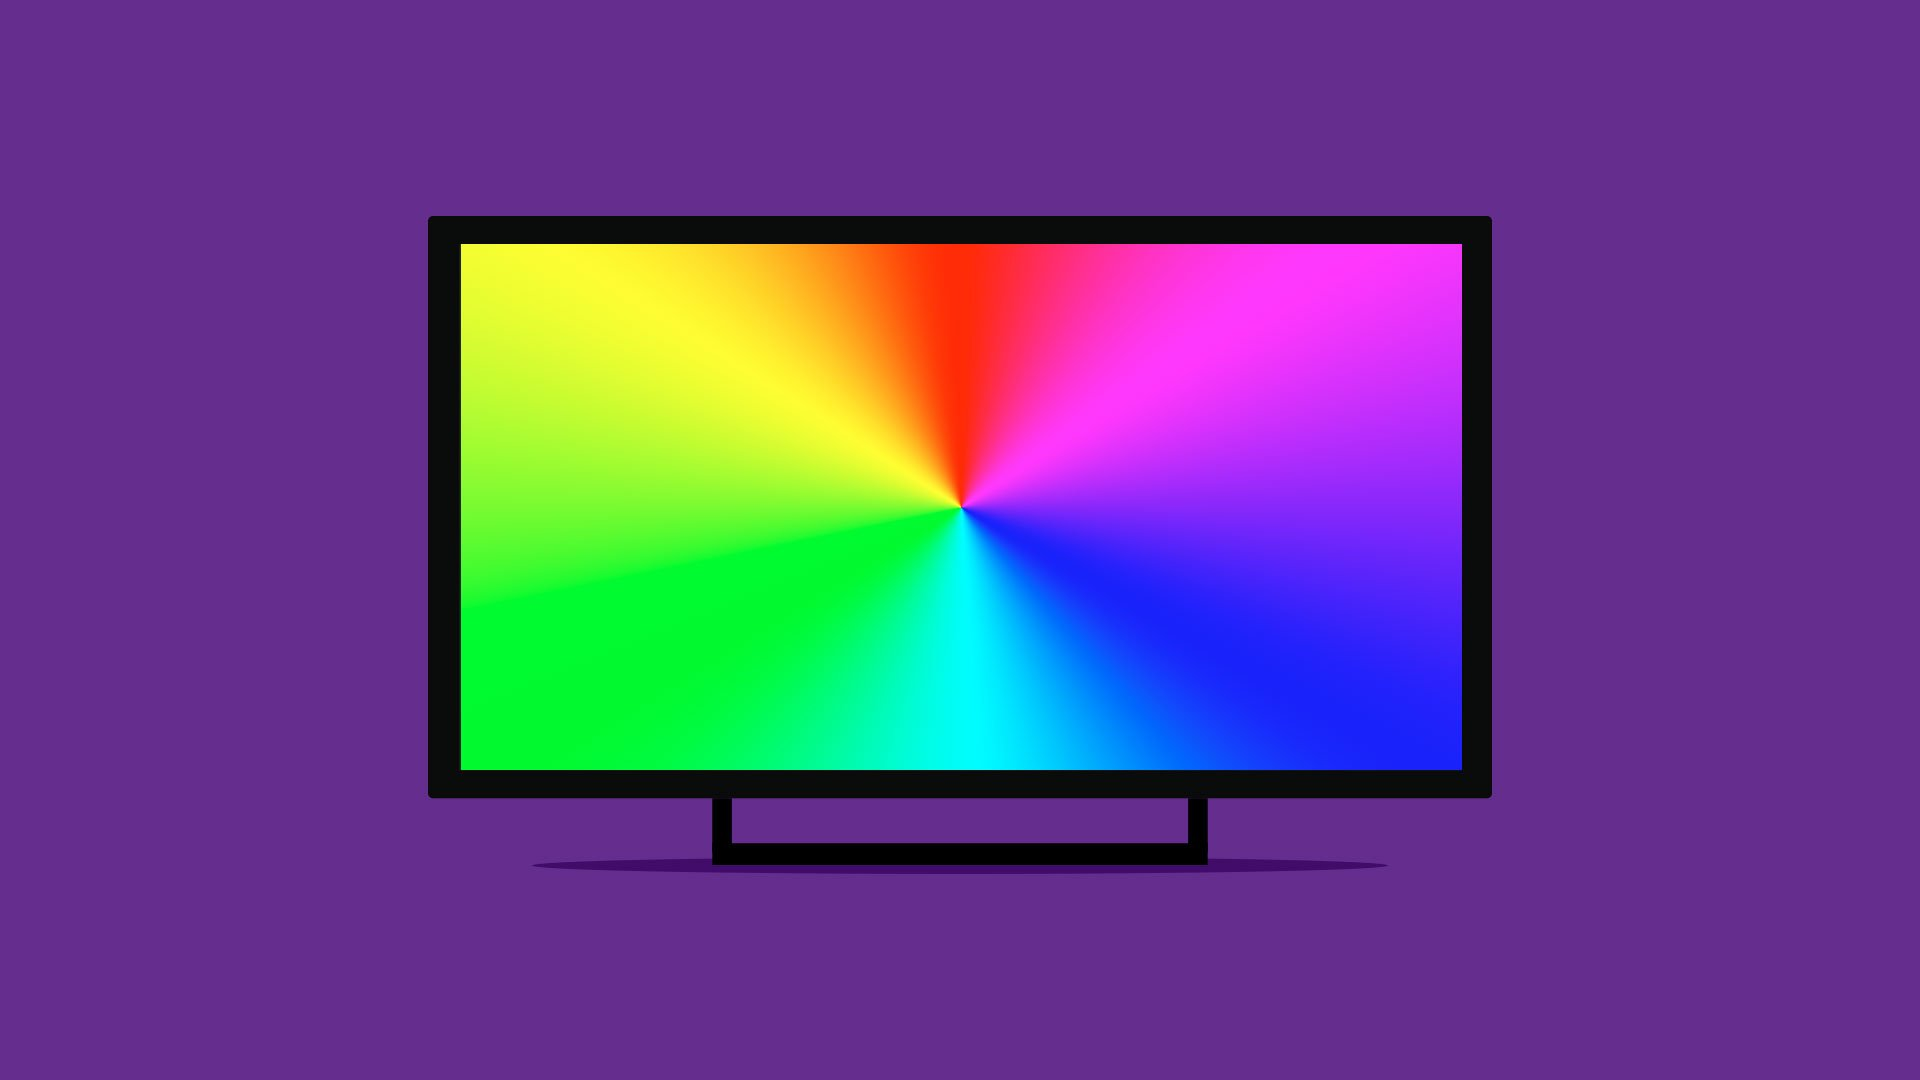 This image is of a rainbow screen error with the Raspberry Pi.